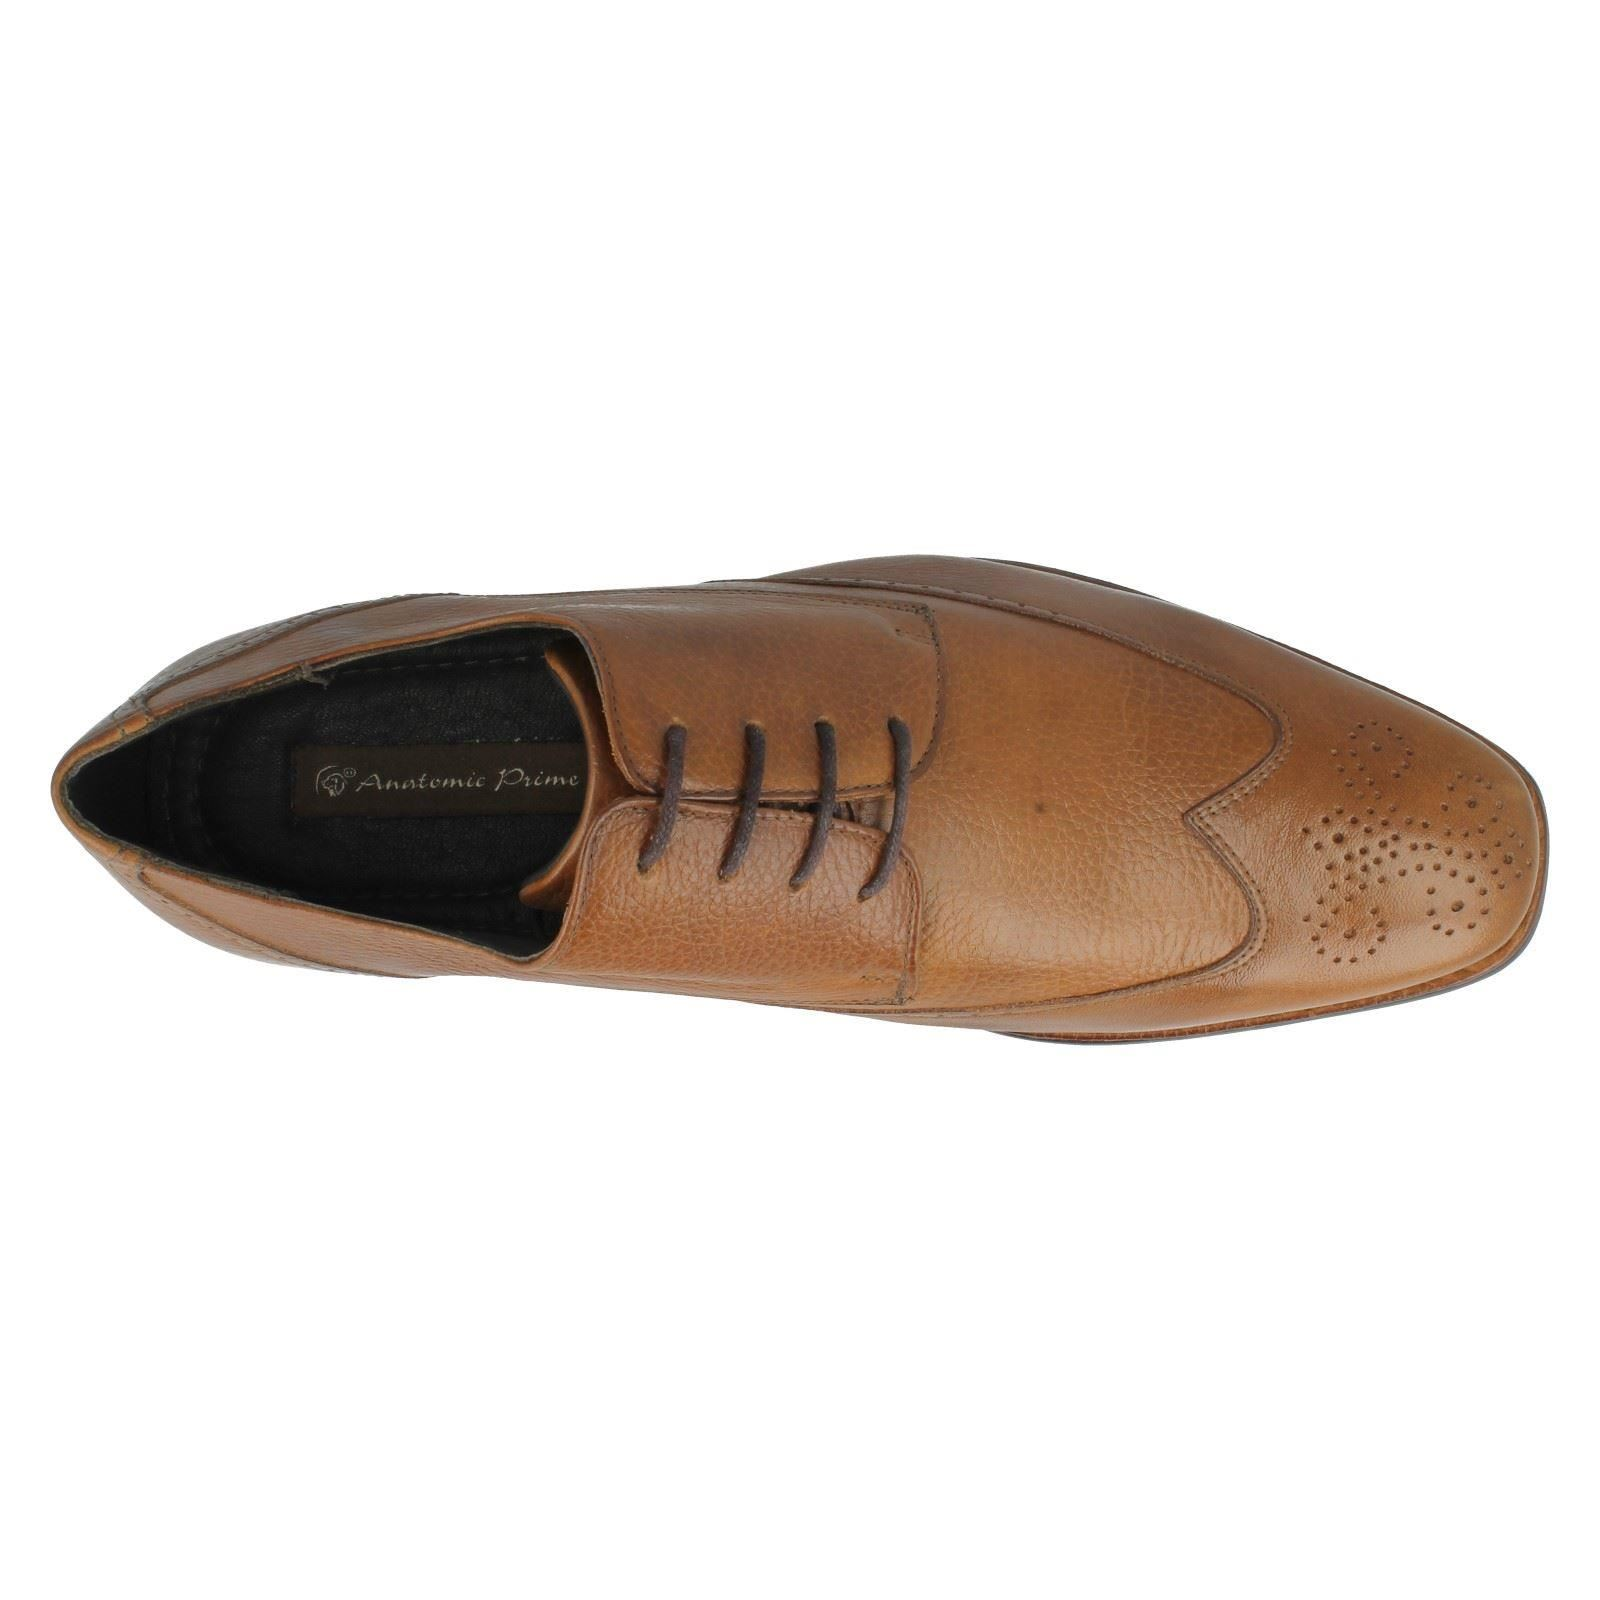 Mens Anatomic & Co Prime 'Guara' Lace Up Schuhes Label  K